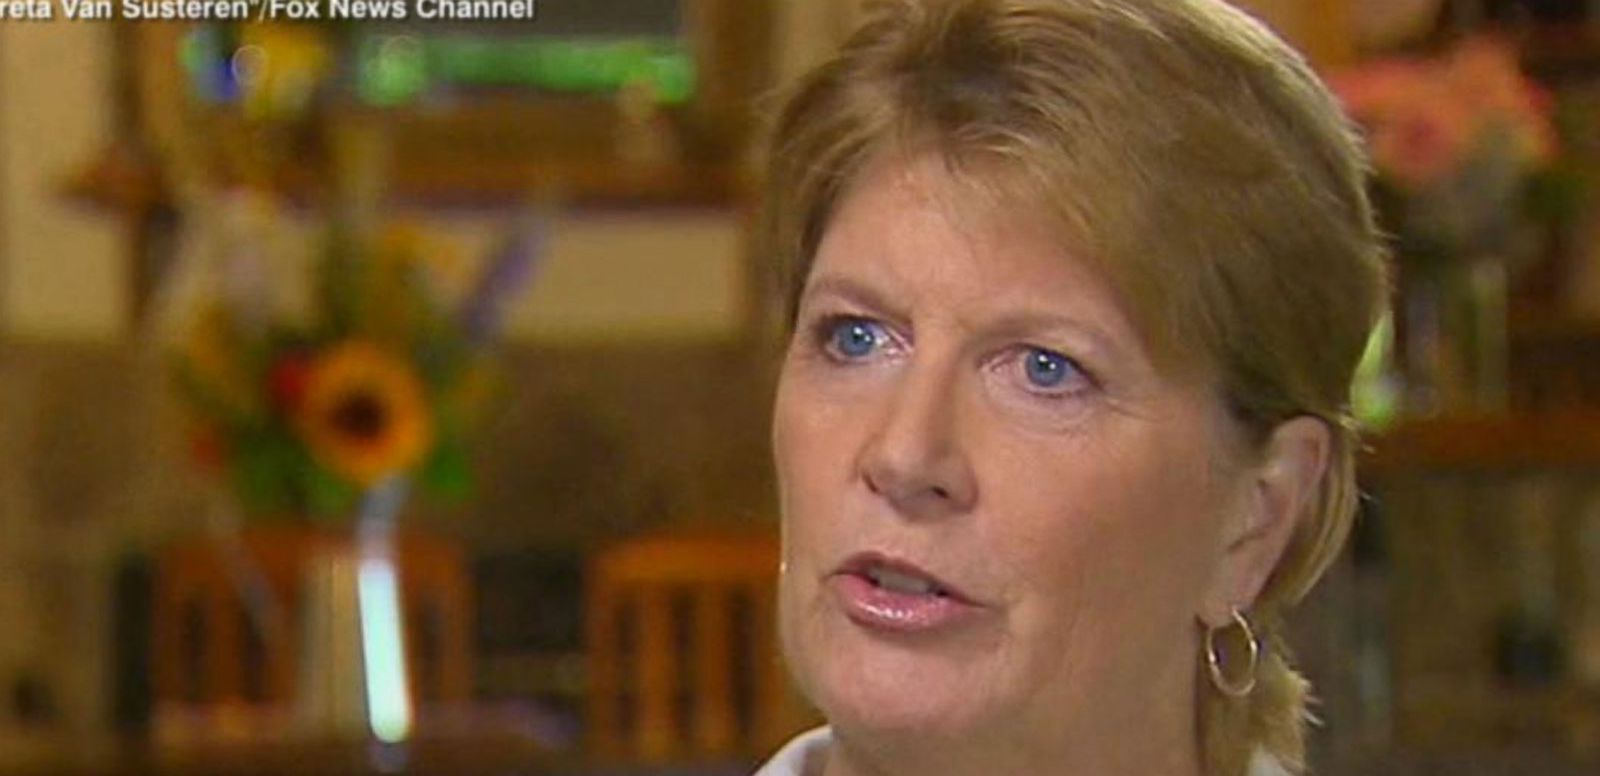 VIDEO: Virginia Survivor Recounts the Shooting That Unfolded on Live TV